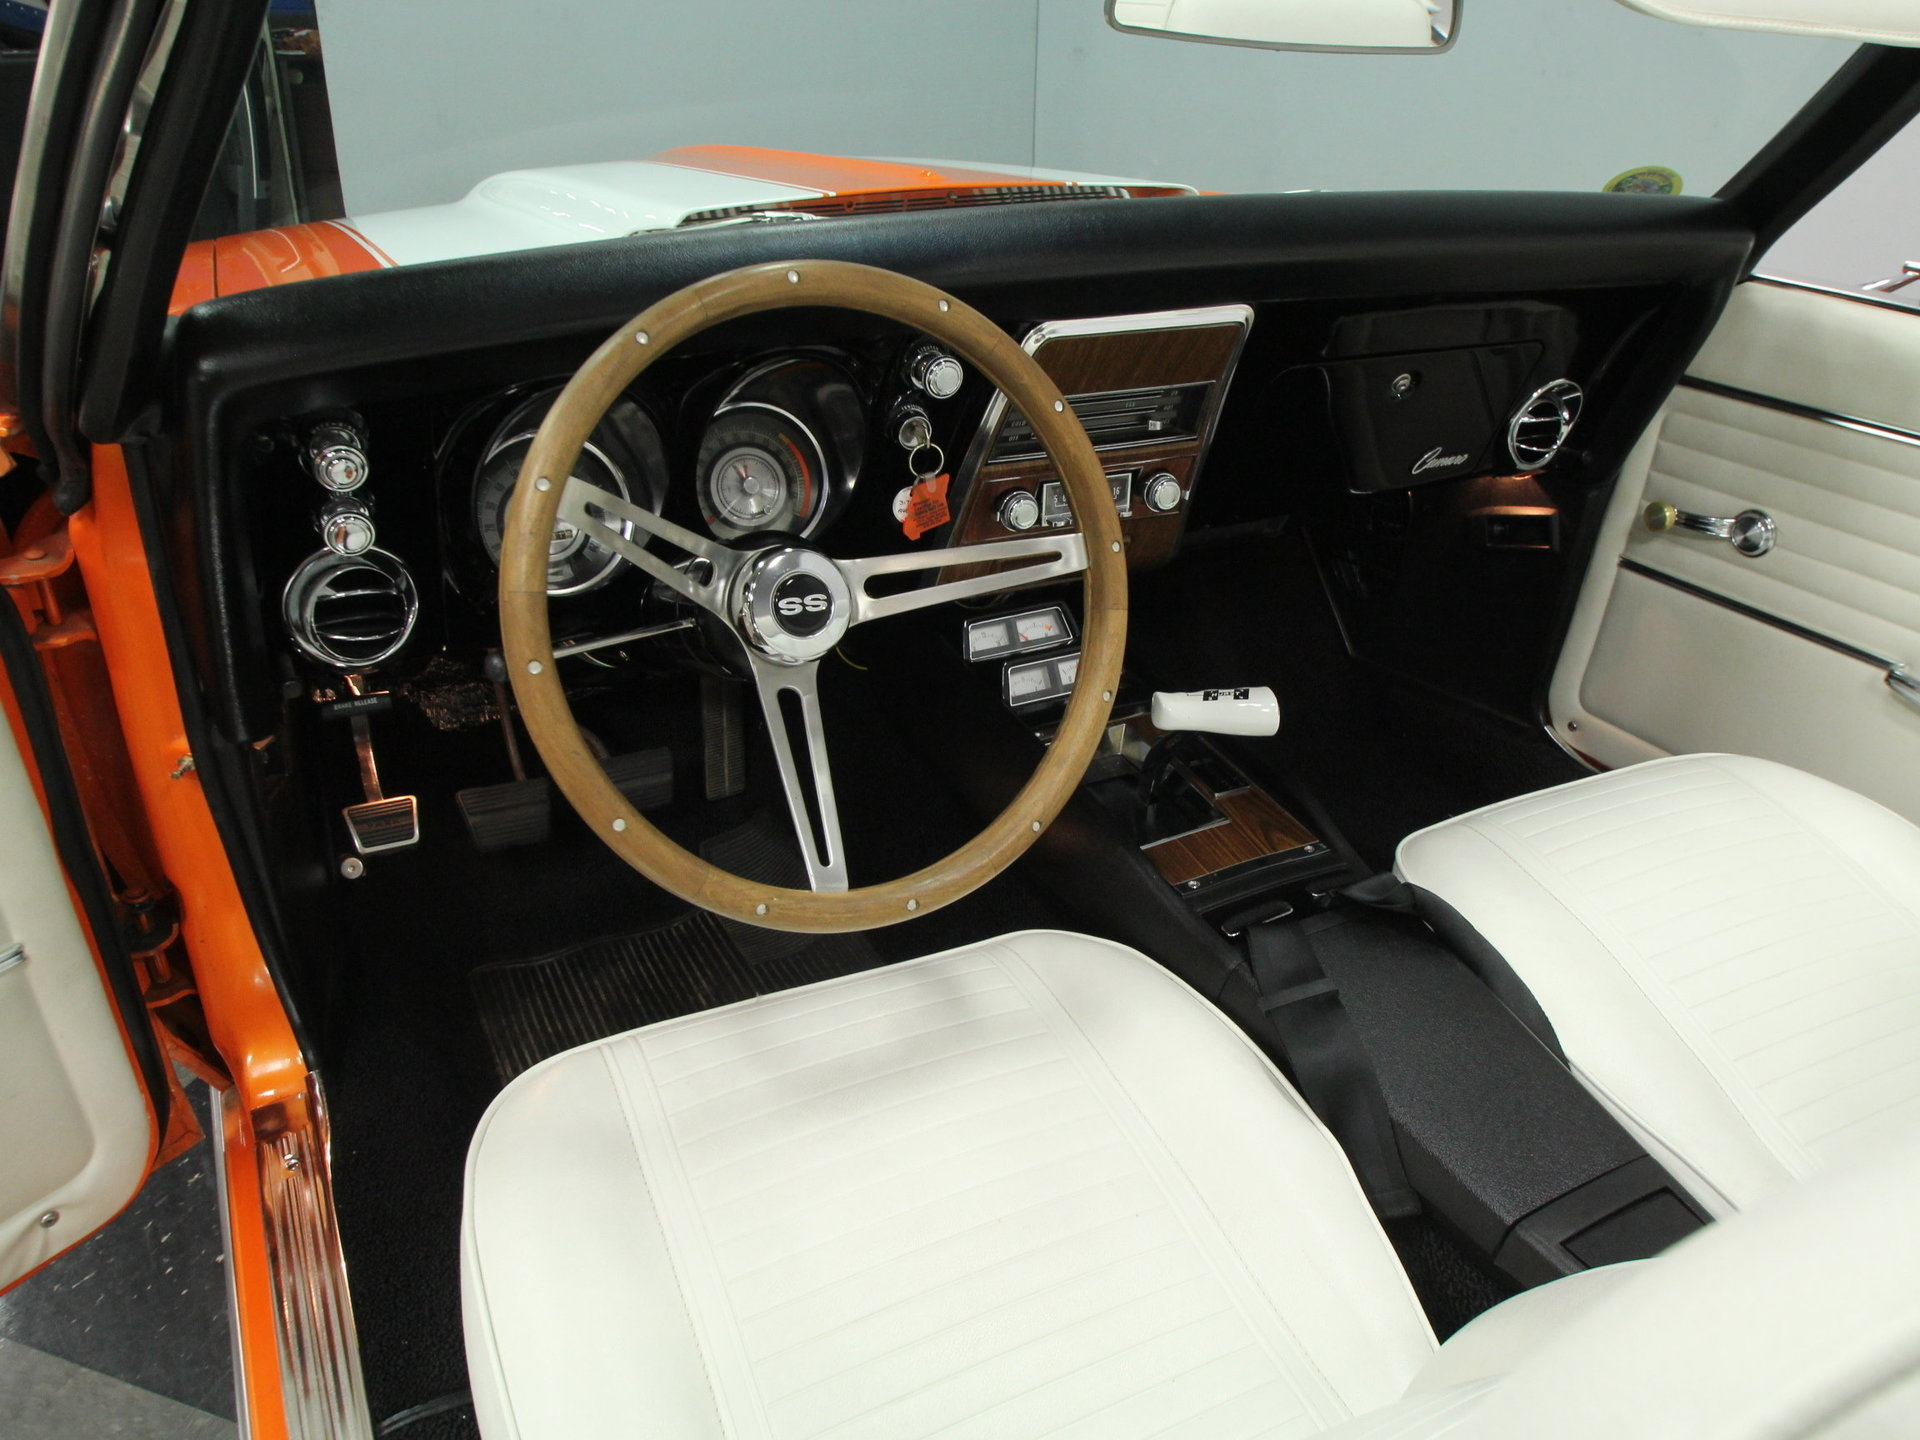 1968 Chevrolet Camaro Streetside Classics The Nations Trusted Tic Toc Tach Wiring Diagram View 360